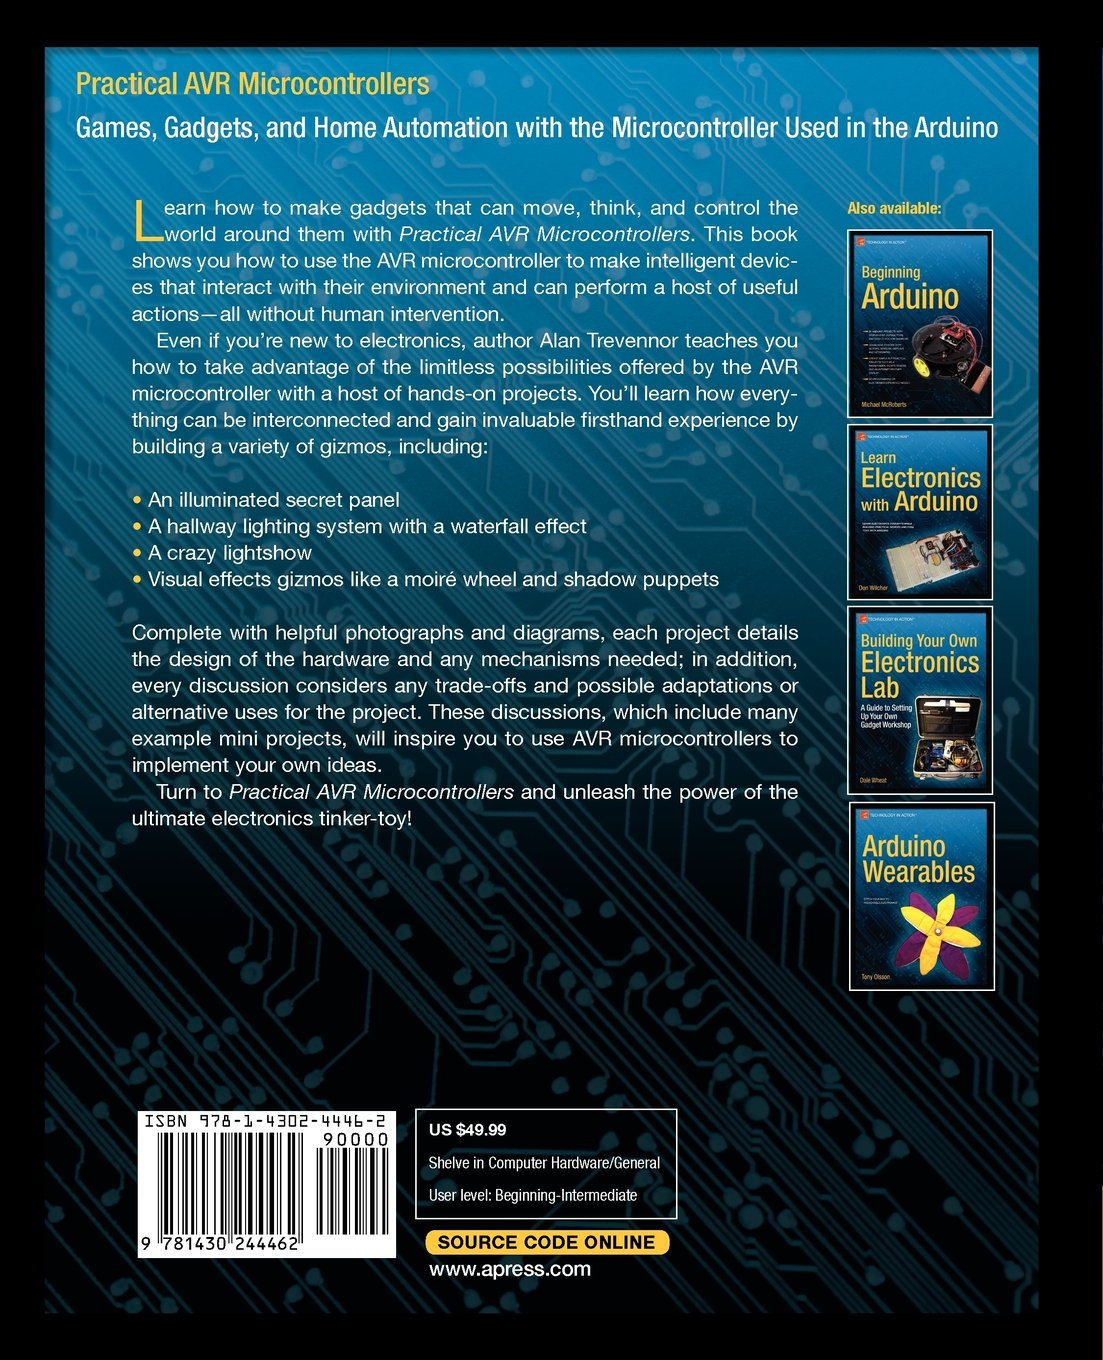 Practical AVR Microcontrollers: Games, Gadgets, and Home